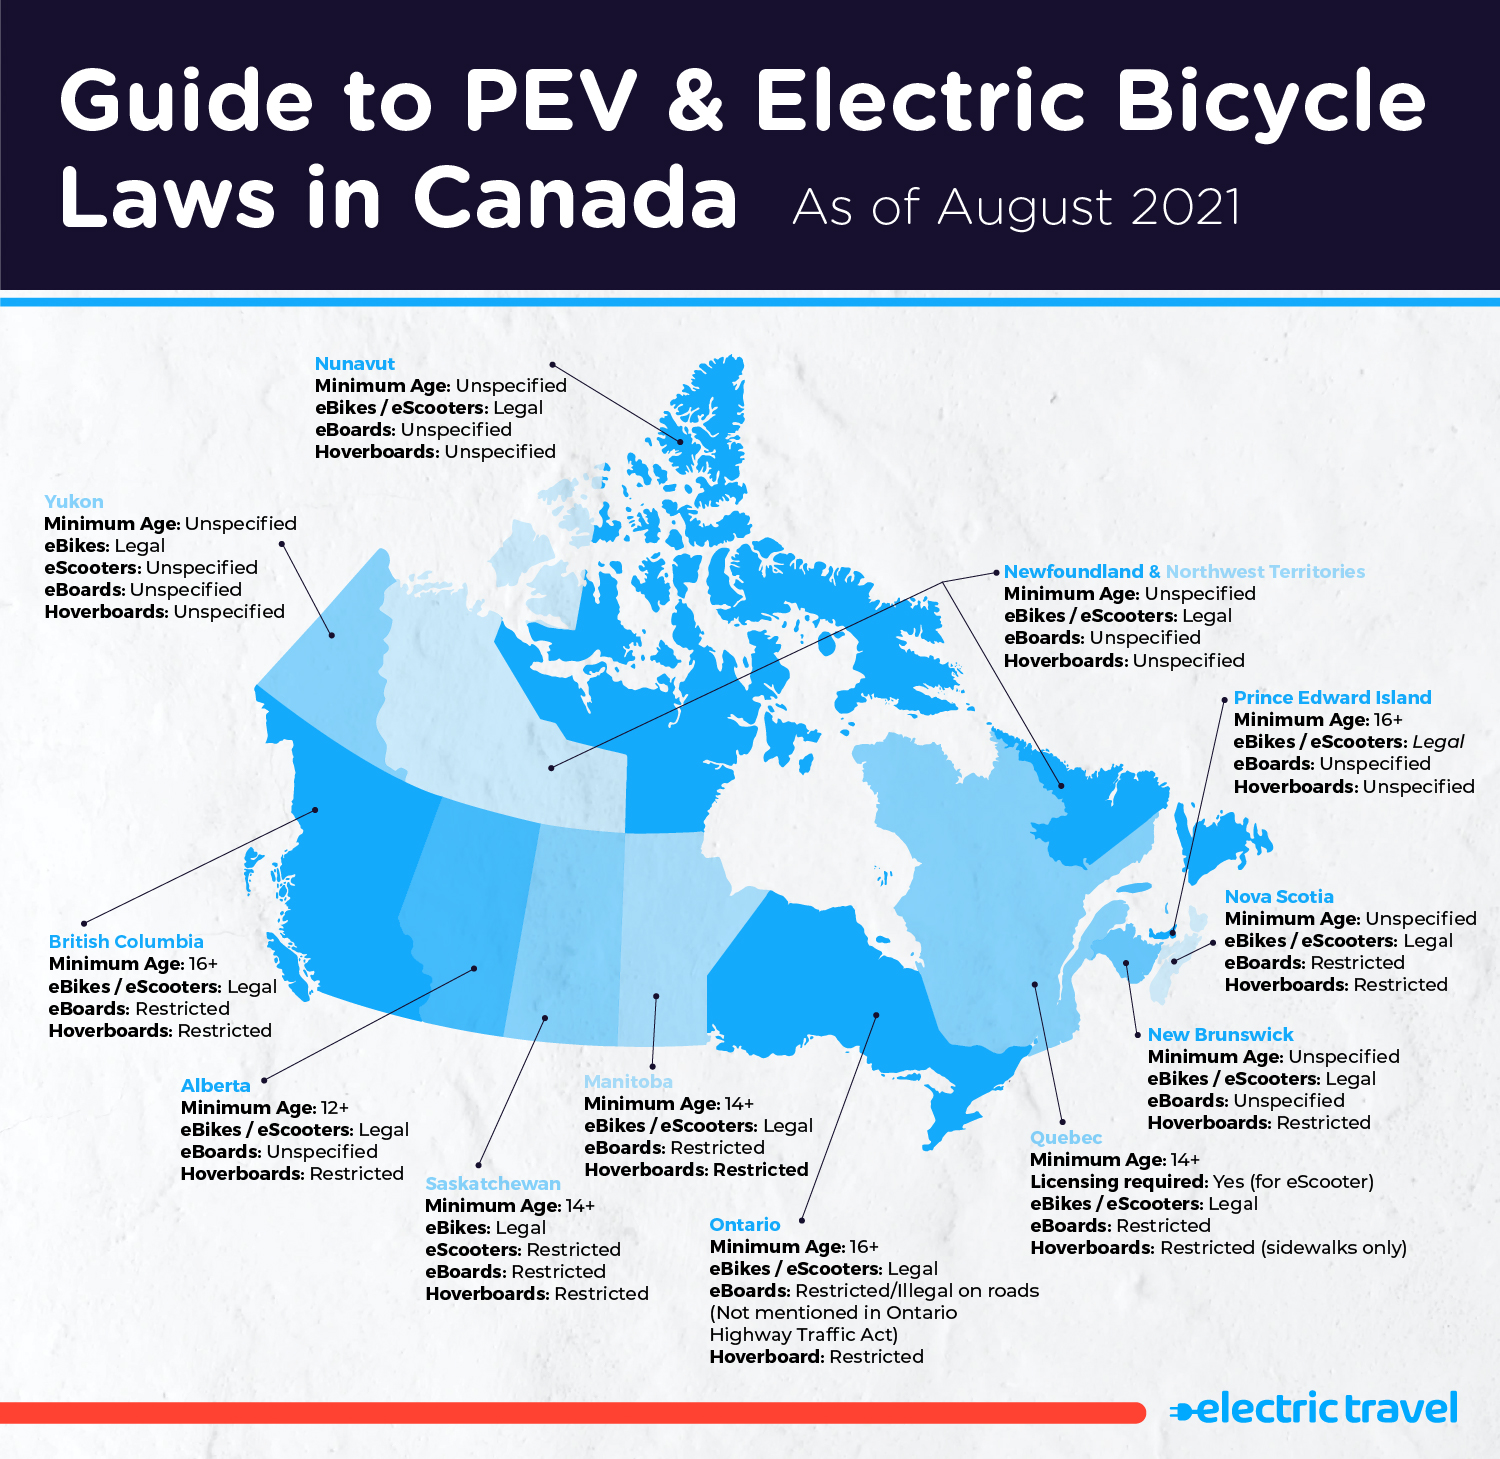 Guide to PEV and eBike laws in Canada (infographic)